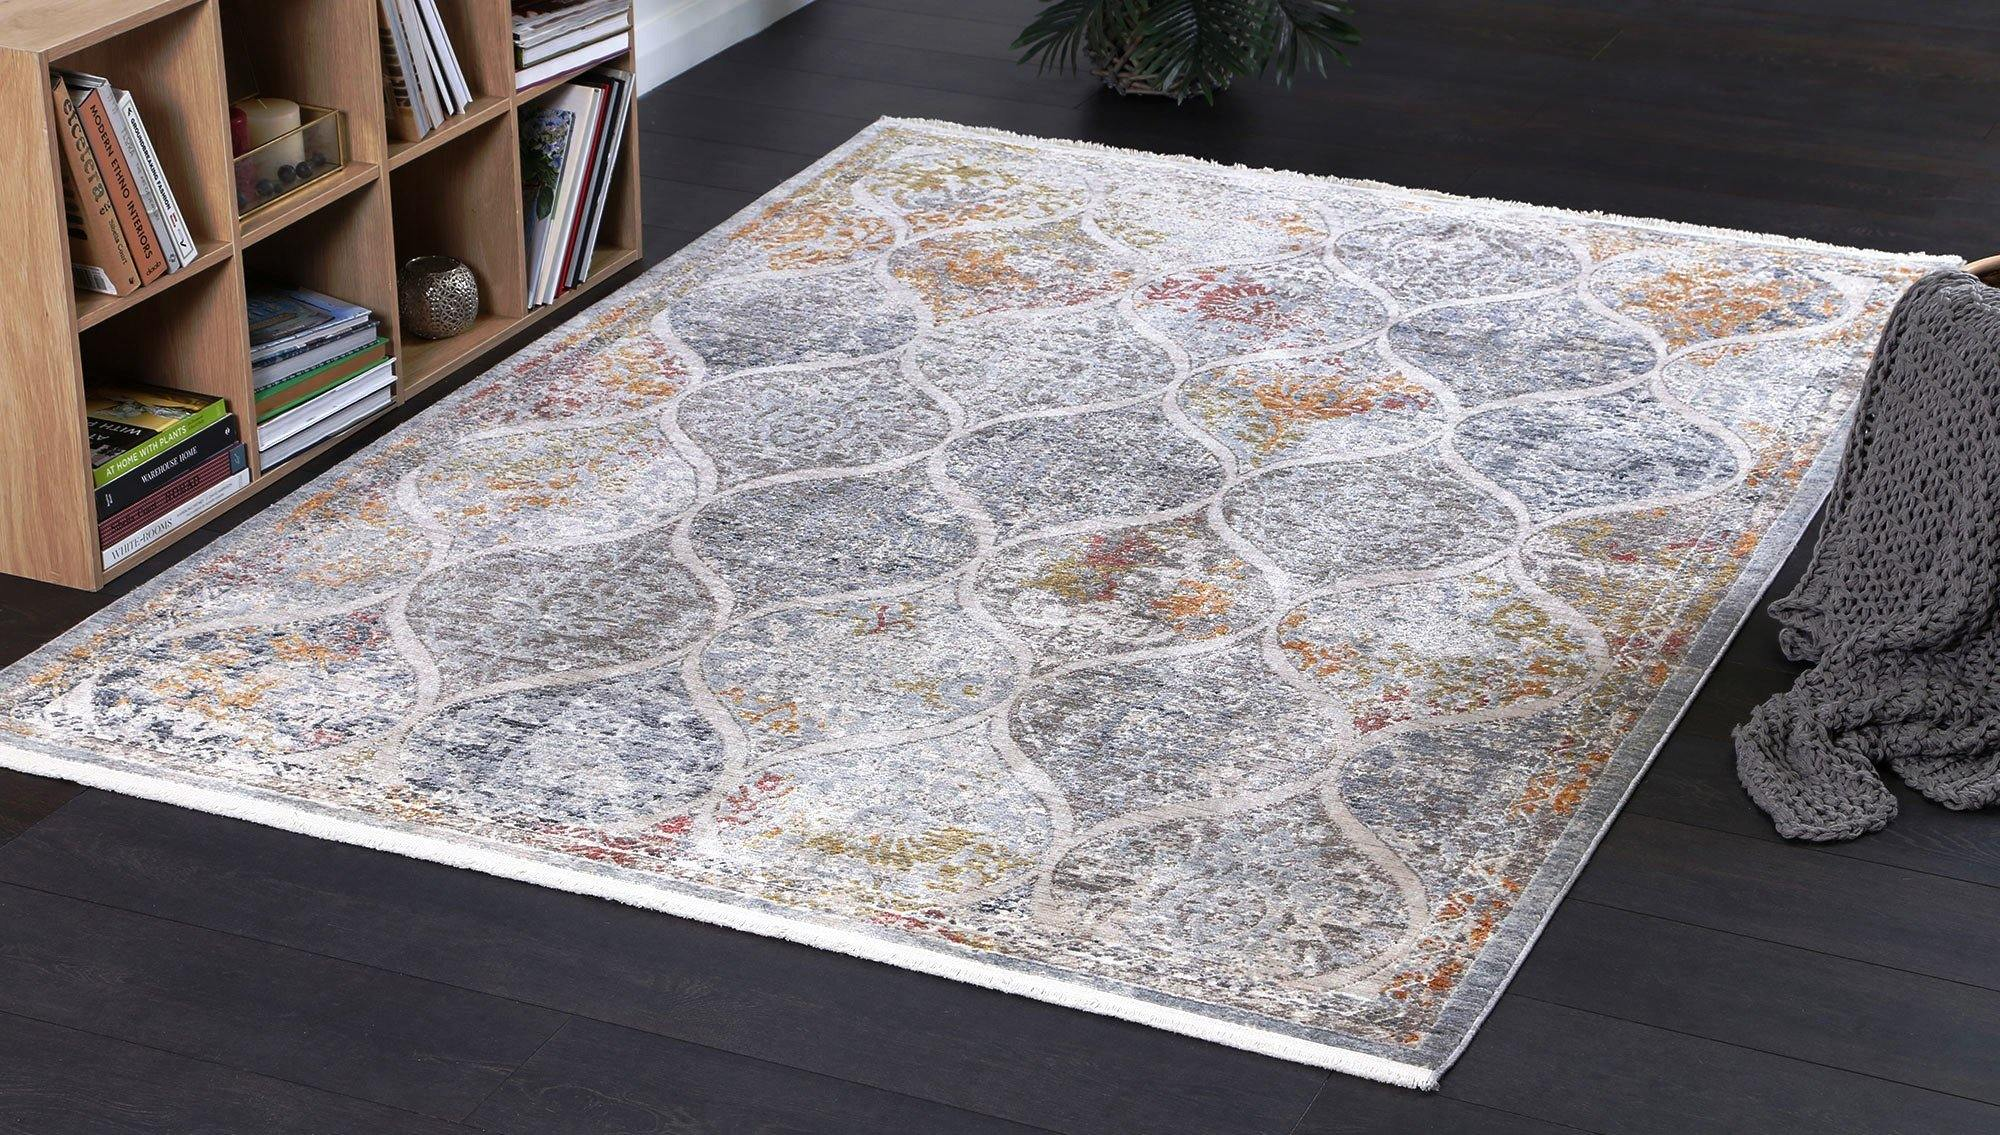 Mirage Vintage Lantern Multi Rug - The Rugs